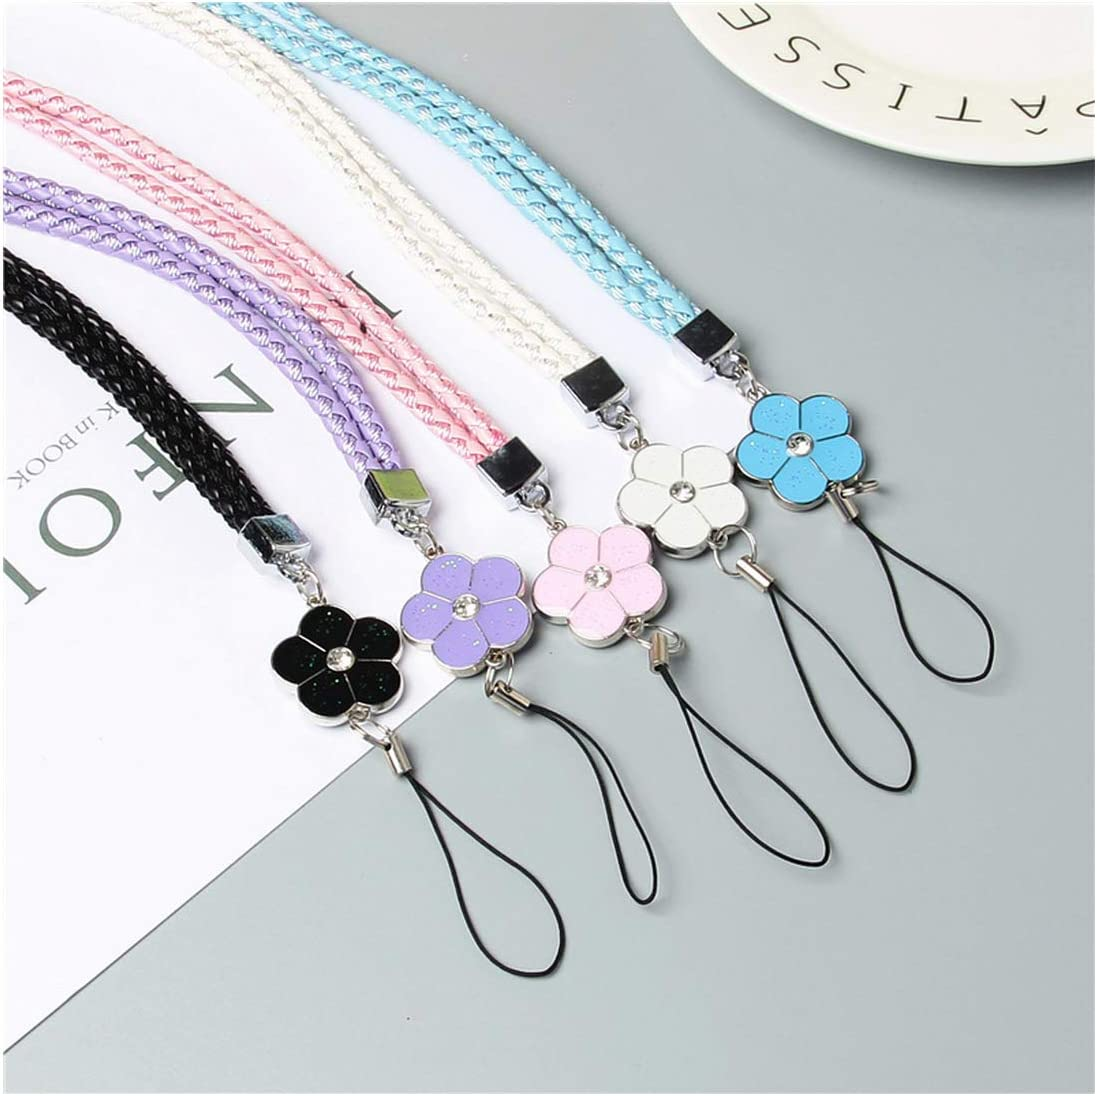 Cute Flower Colorful Mobile Phone Lanyard Phone Strapsk Hanging Rope Card USB Holder Chain Keychain Cords,Black